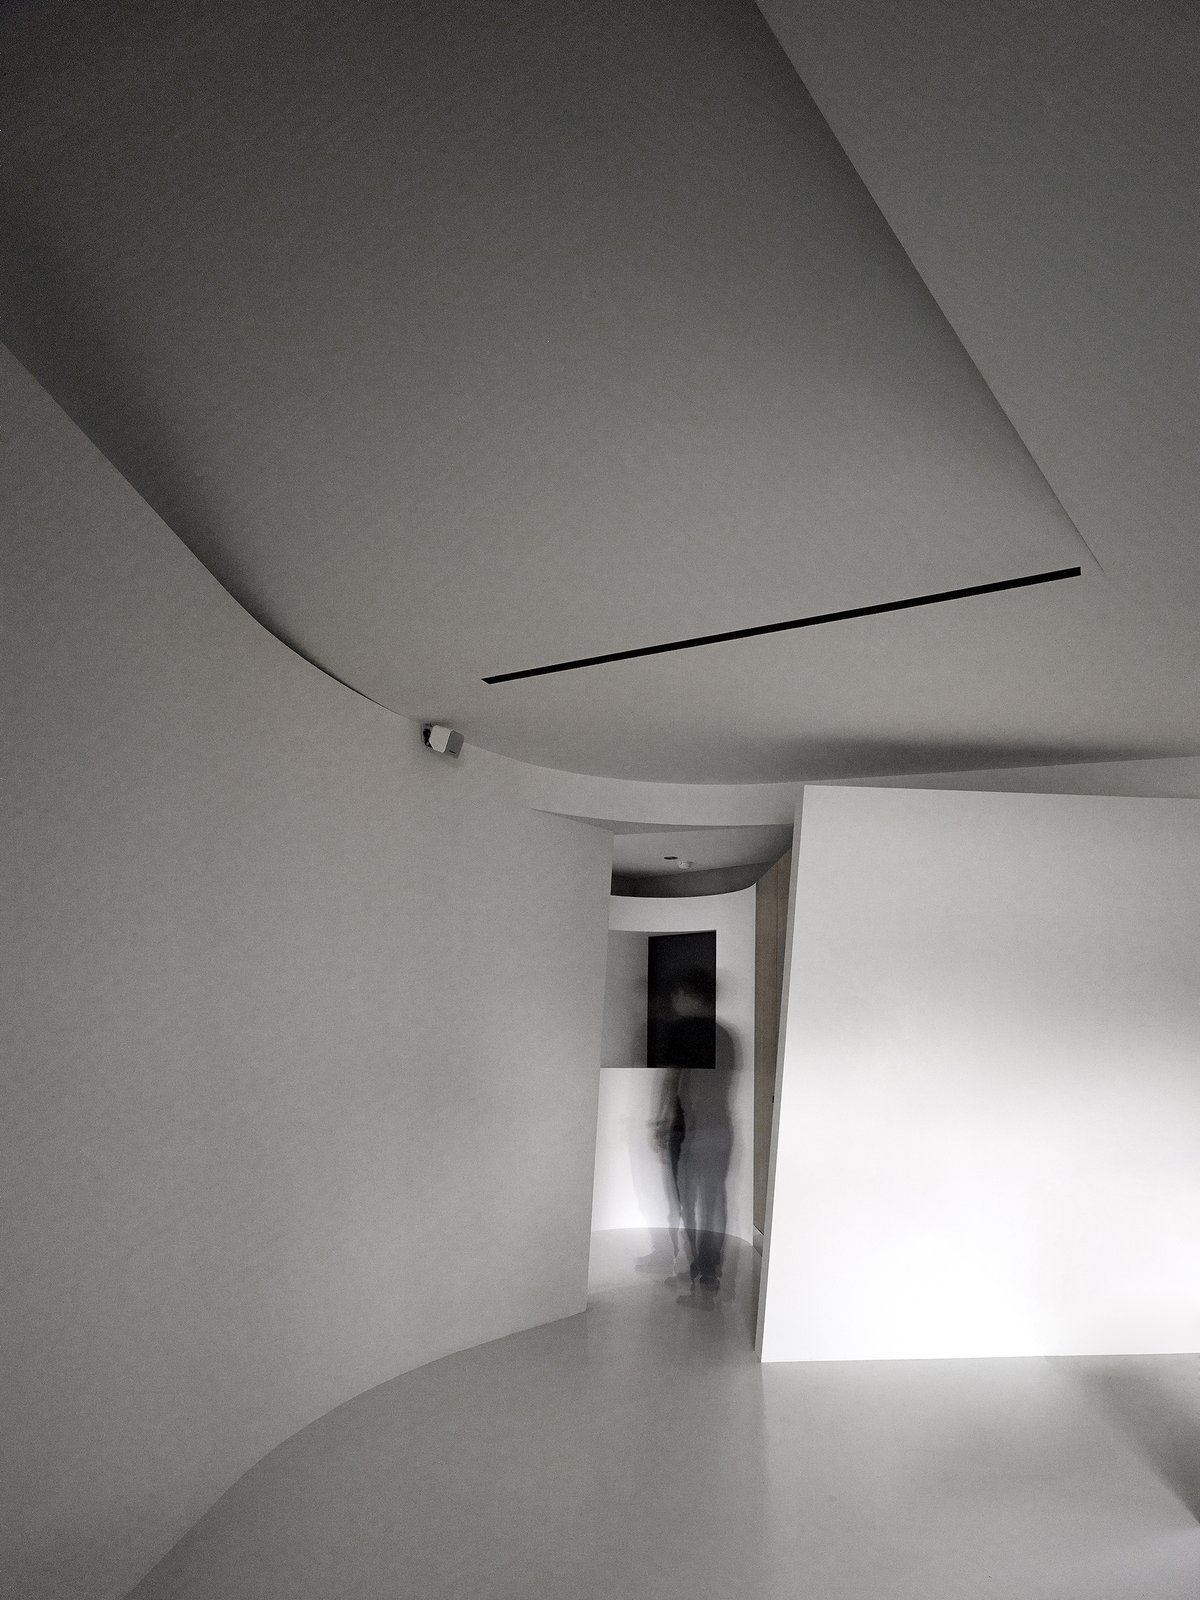 Interior, Living Room, Concrete Floor, and Ceiling Lighting After passing an in-between turning defined by two curved partitions, one enters the private area that contains a bedroom, a bathroom and a walk-in closet.   Fluid House